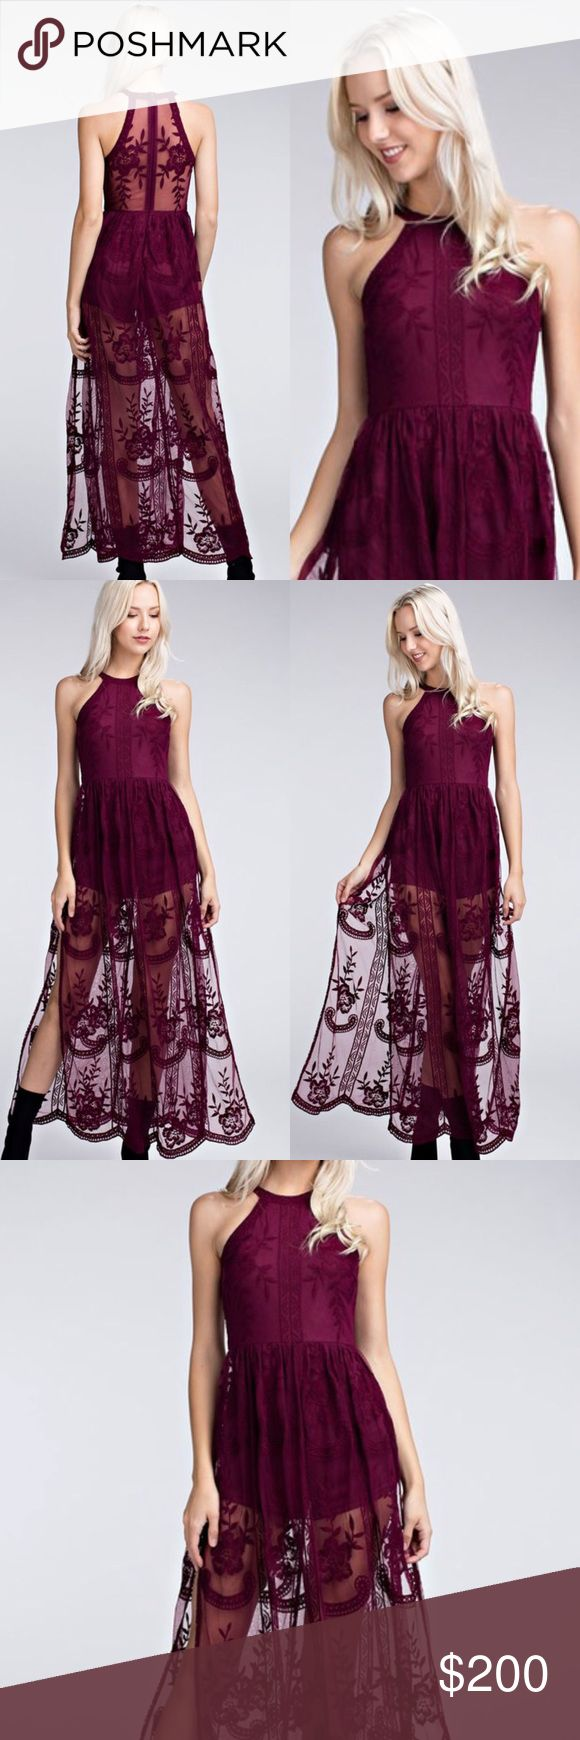 Coming 🔜 Wine Sheer Halter Lace Maxi Dress Romper Transition into fall with this Honey Punch Romper maxi dress. Honey Punch has taken their best selling Lace embroidered romper maxi and turned it into a halter style, with a high neckline. Pair this with Gladiator Sandals for the perfect Boho look. Price will be $65 firm, LIKE LISTING TO BE NOTIFIED OF ARRIVAL. ESTIMATED DELIVERY DATE IS 09/01. No holds, no trades. Bundle for discount. Honey Punch Dresses